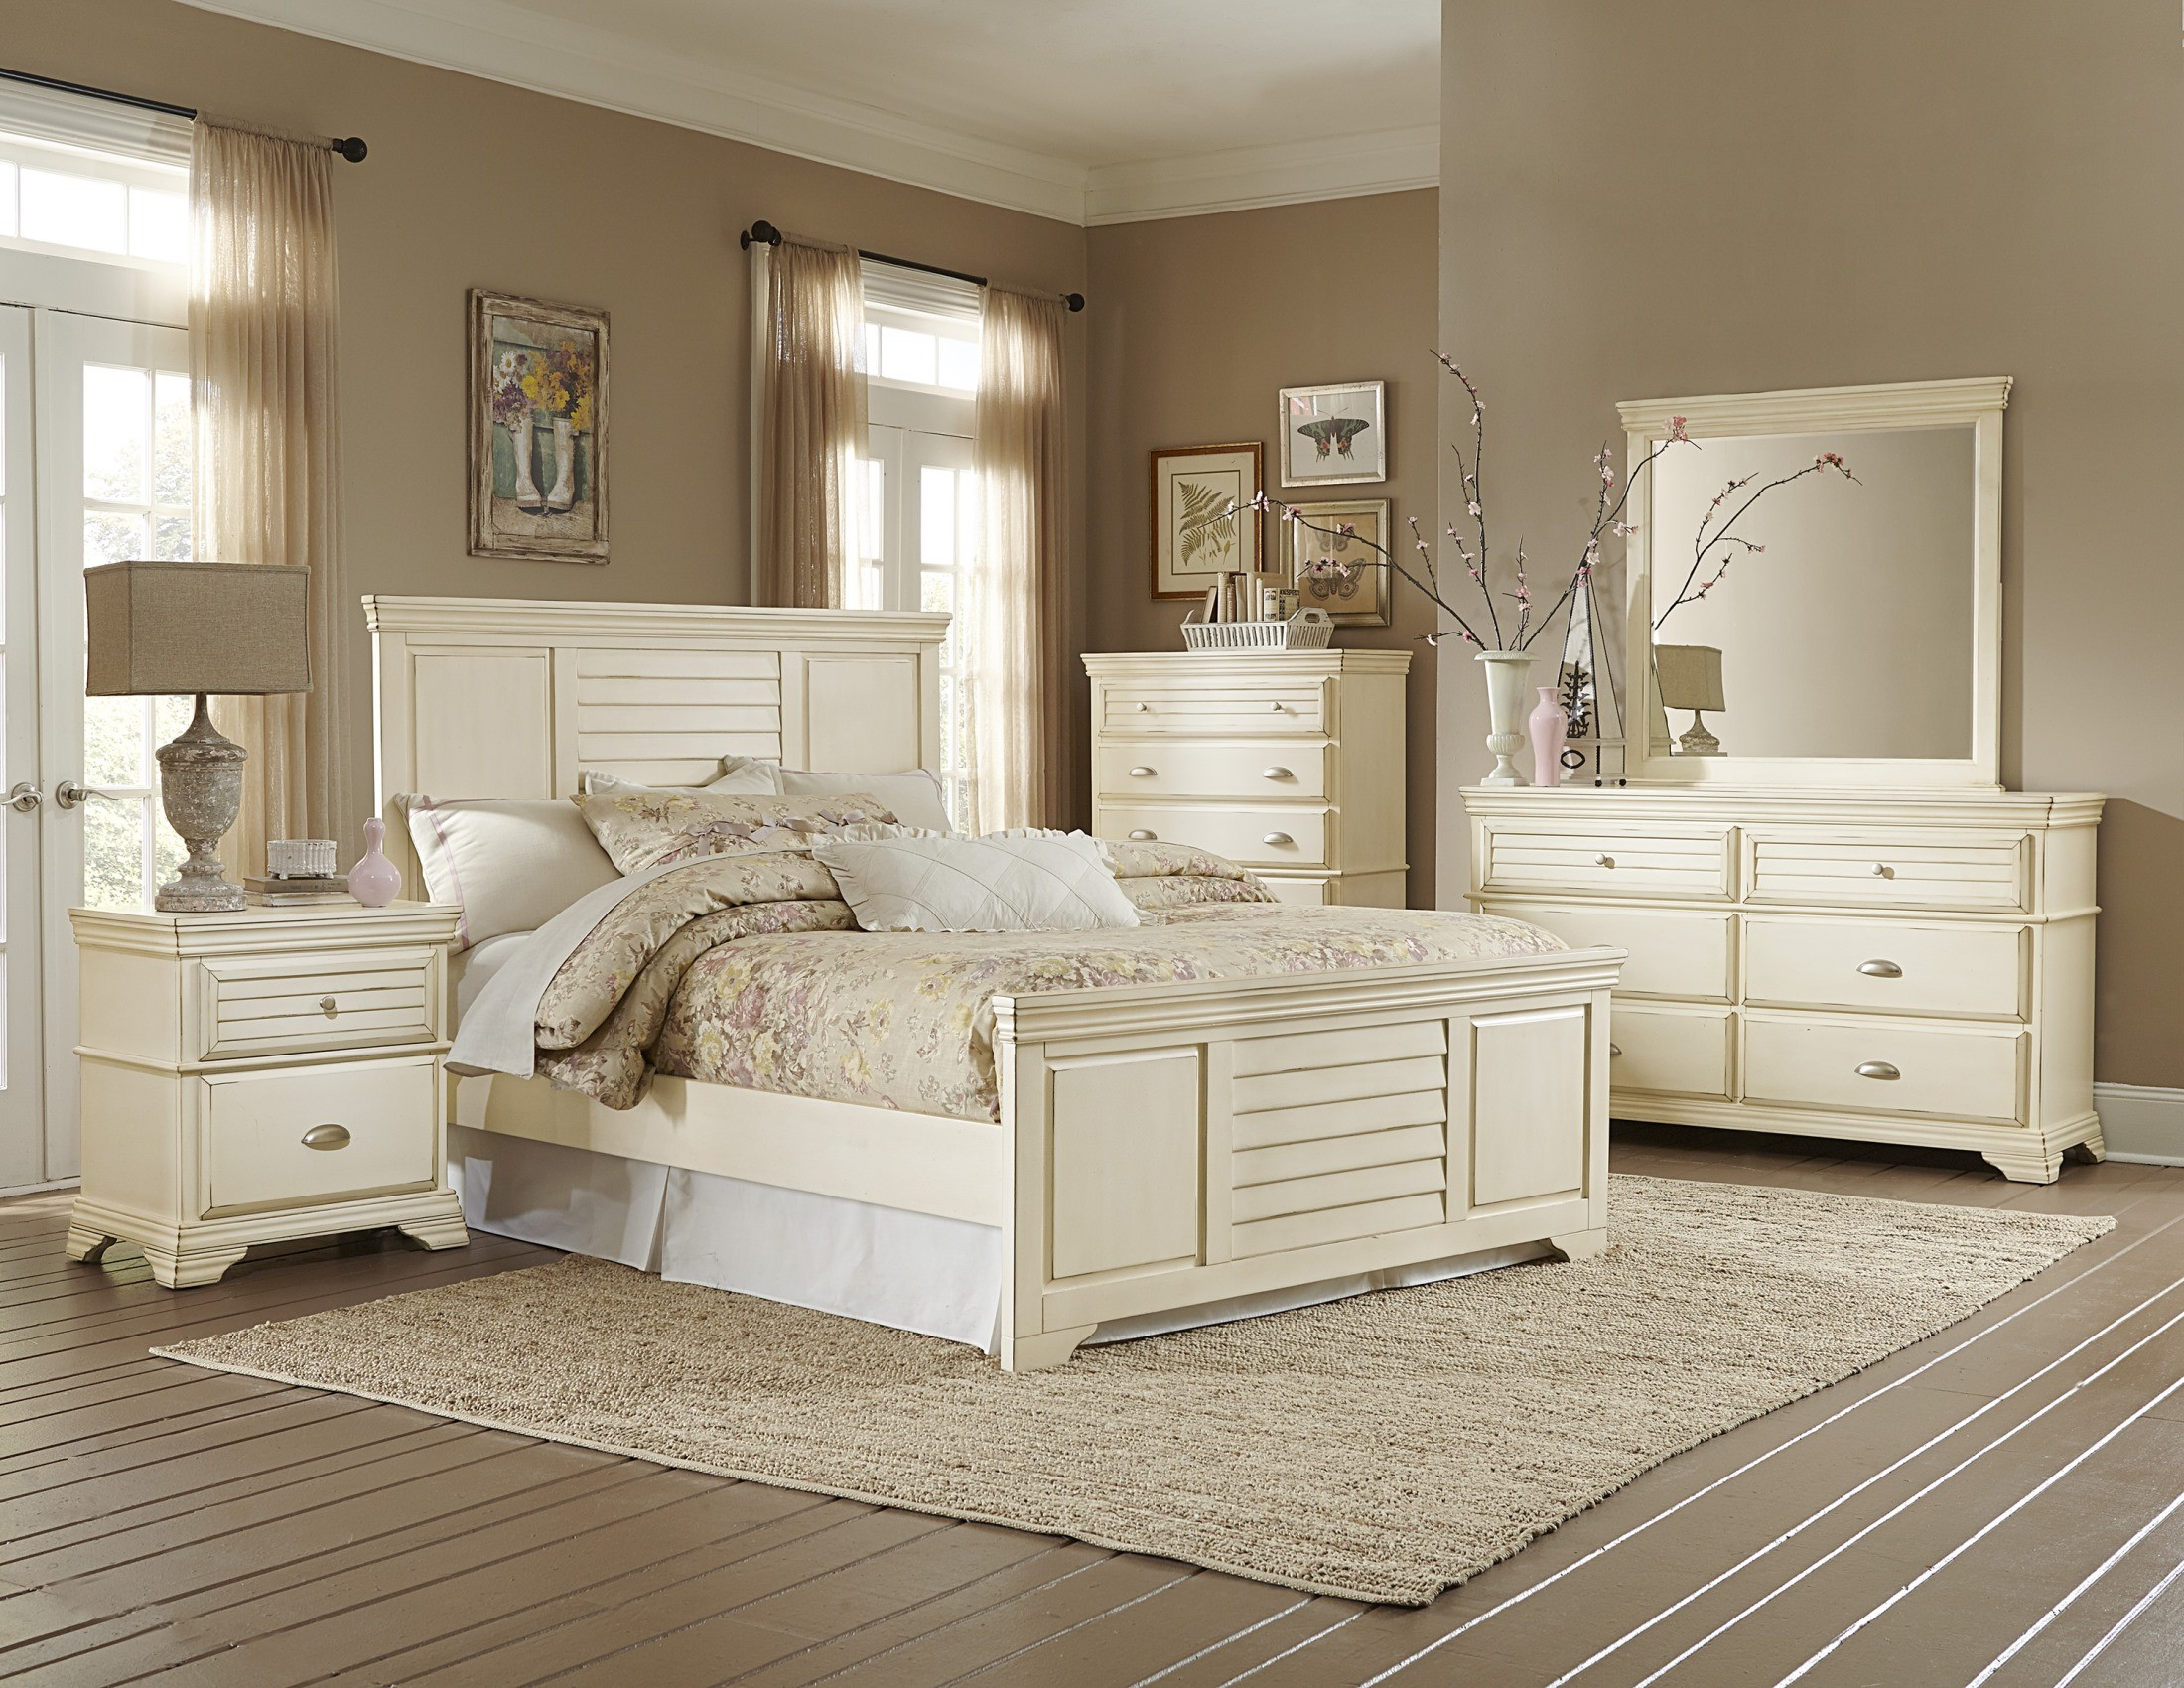 Laurinda antique white panel bedroom set from homelegance - White vintage bedroom furniture sets ...